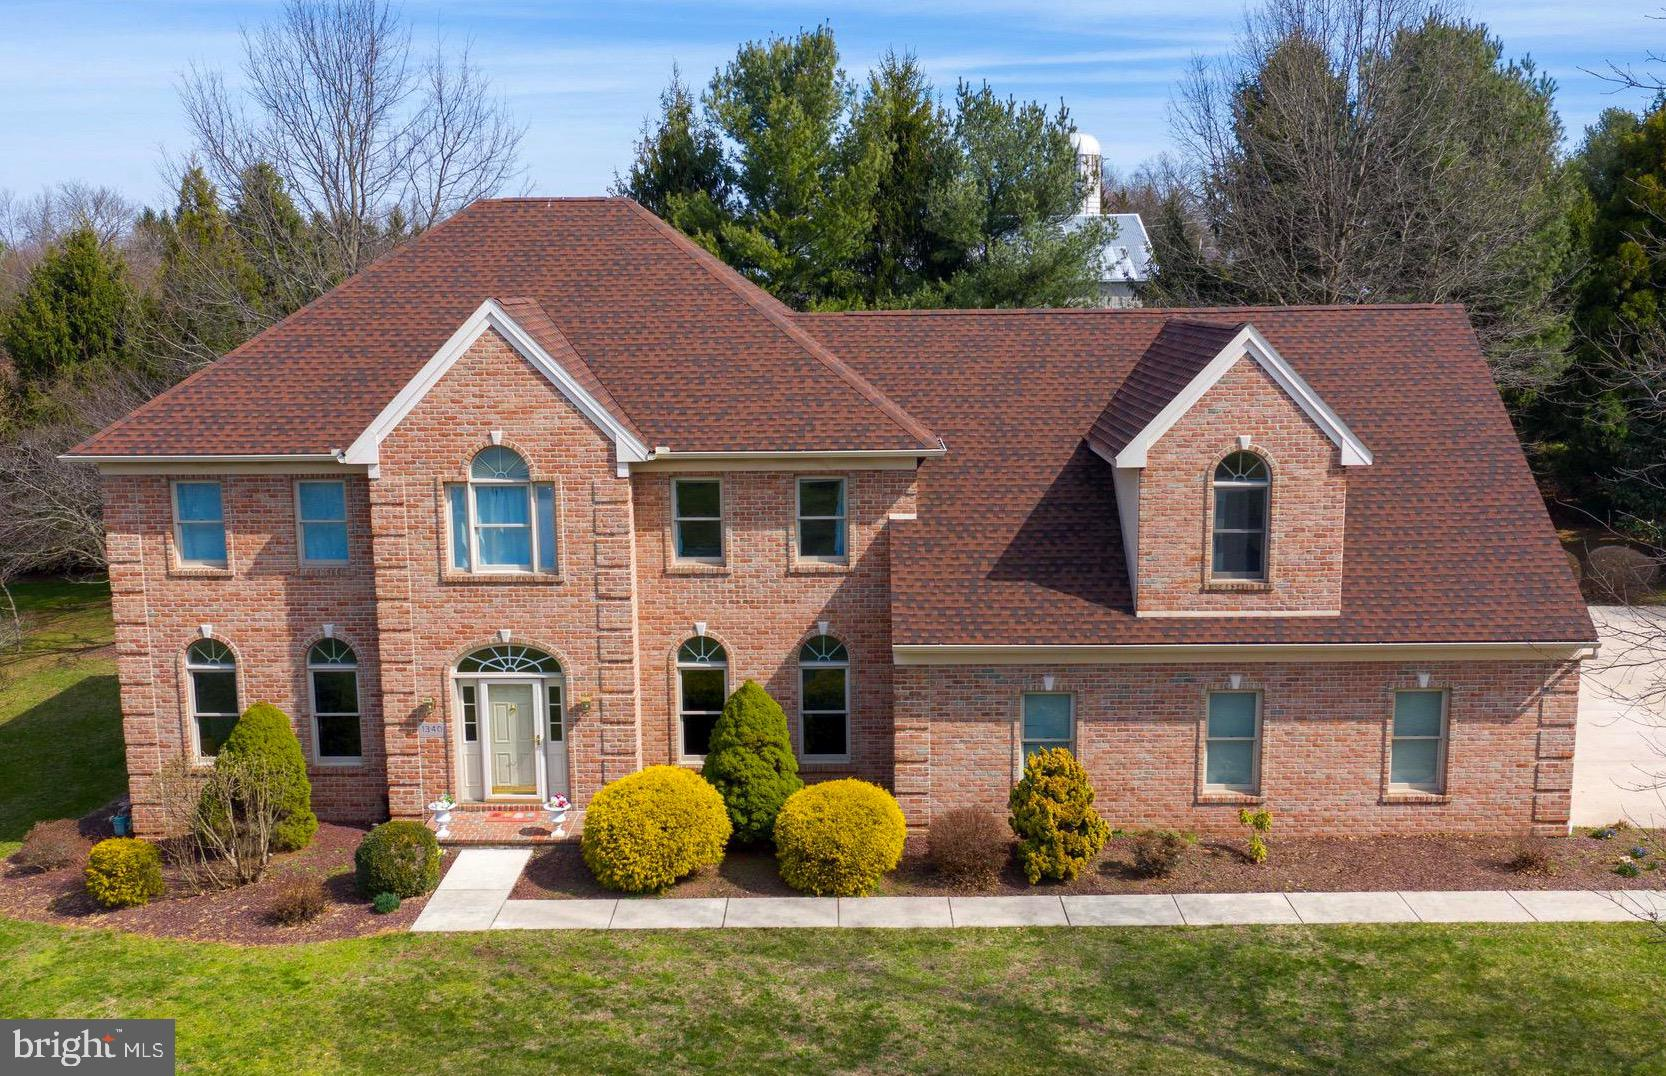 1340 Brittany Drive, York, PA 17404